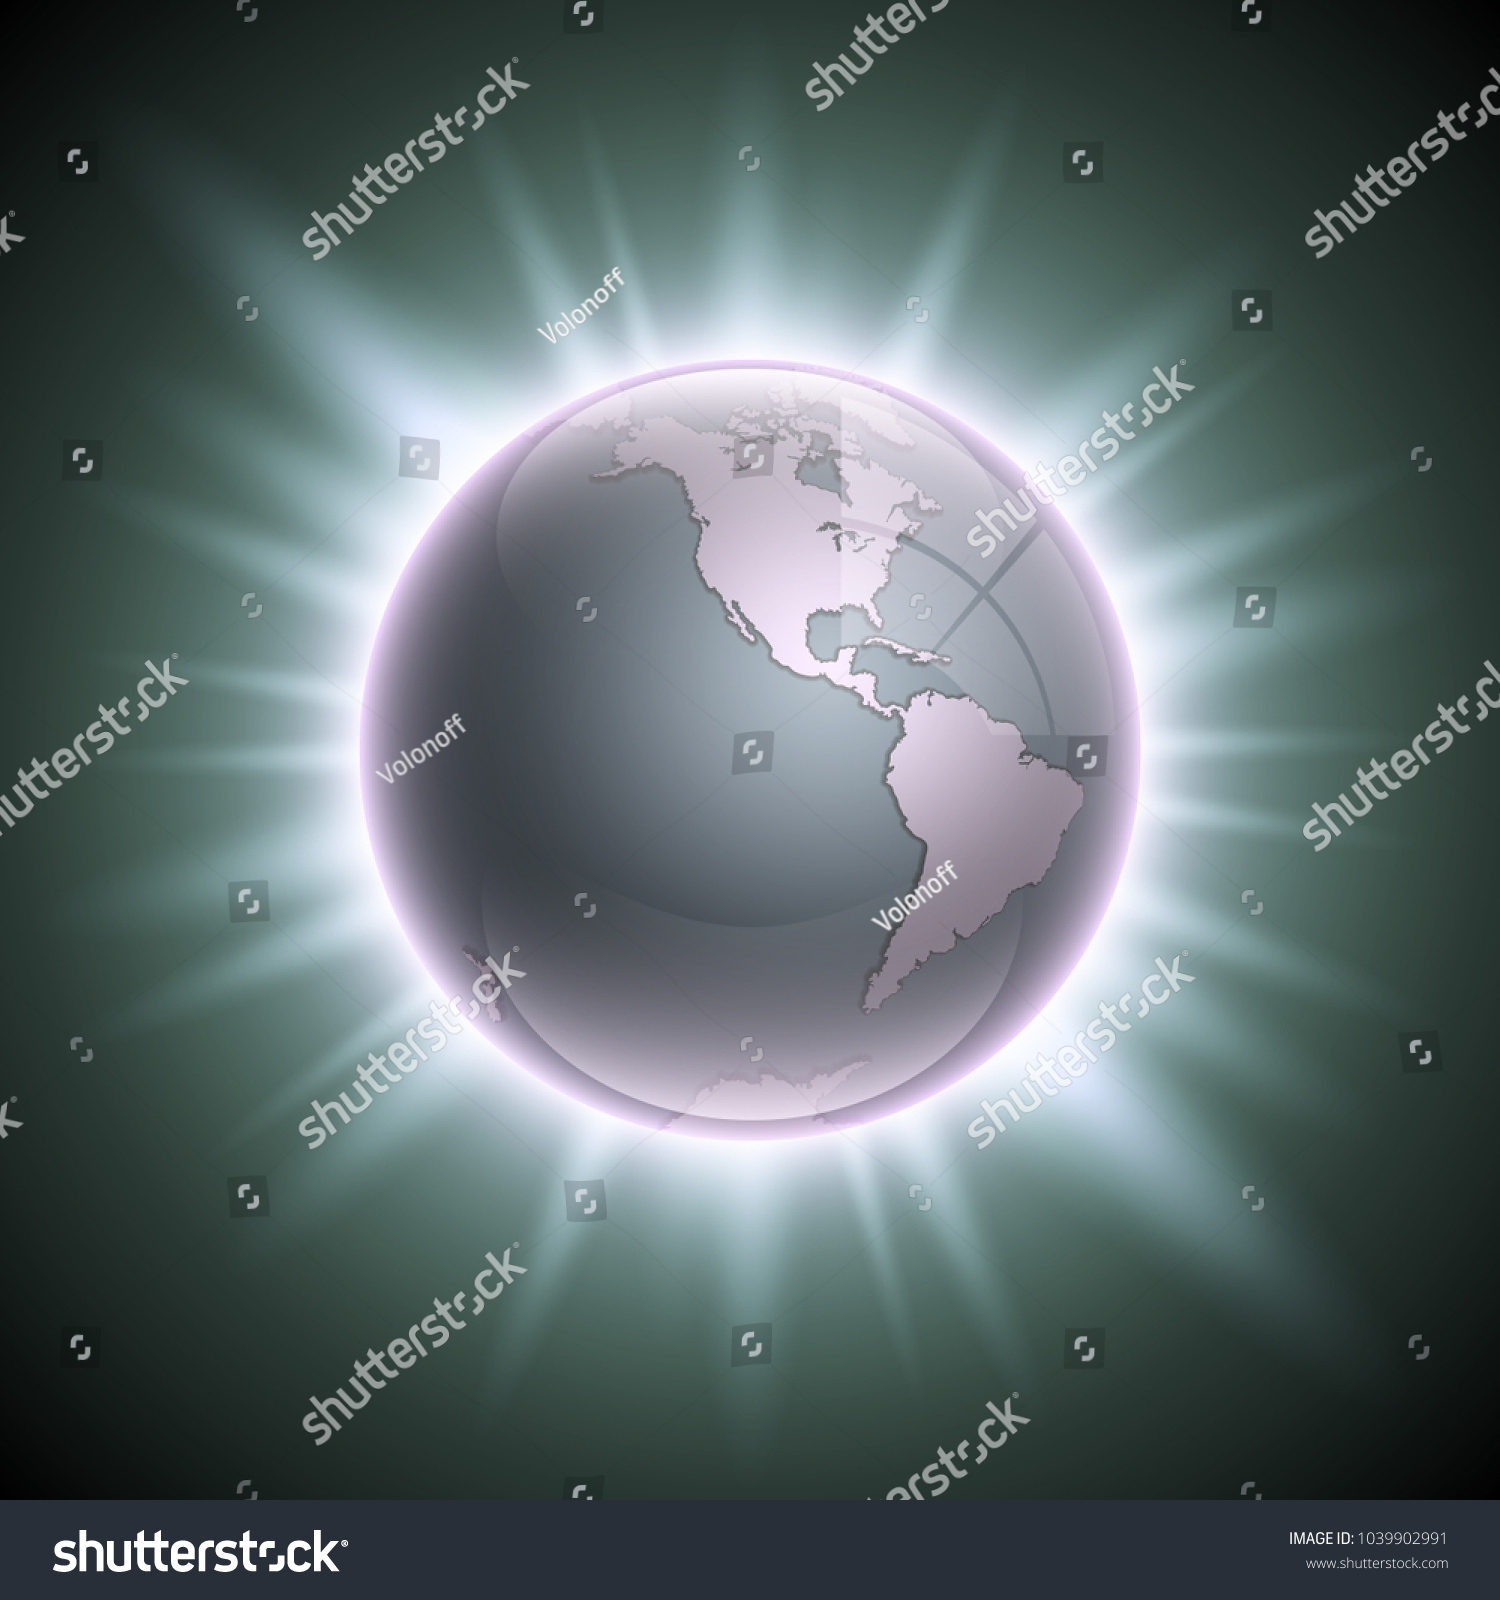 World map rising sun globe icon stock illustration 1039902991 world map with the rising sun globe icon in the space sunlight planet earth gumiabroncs Images